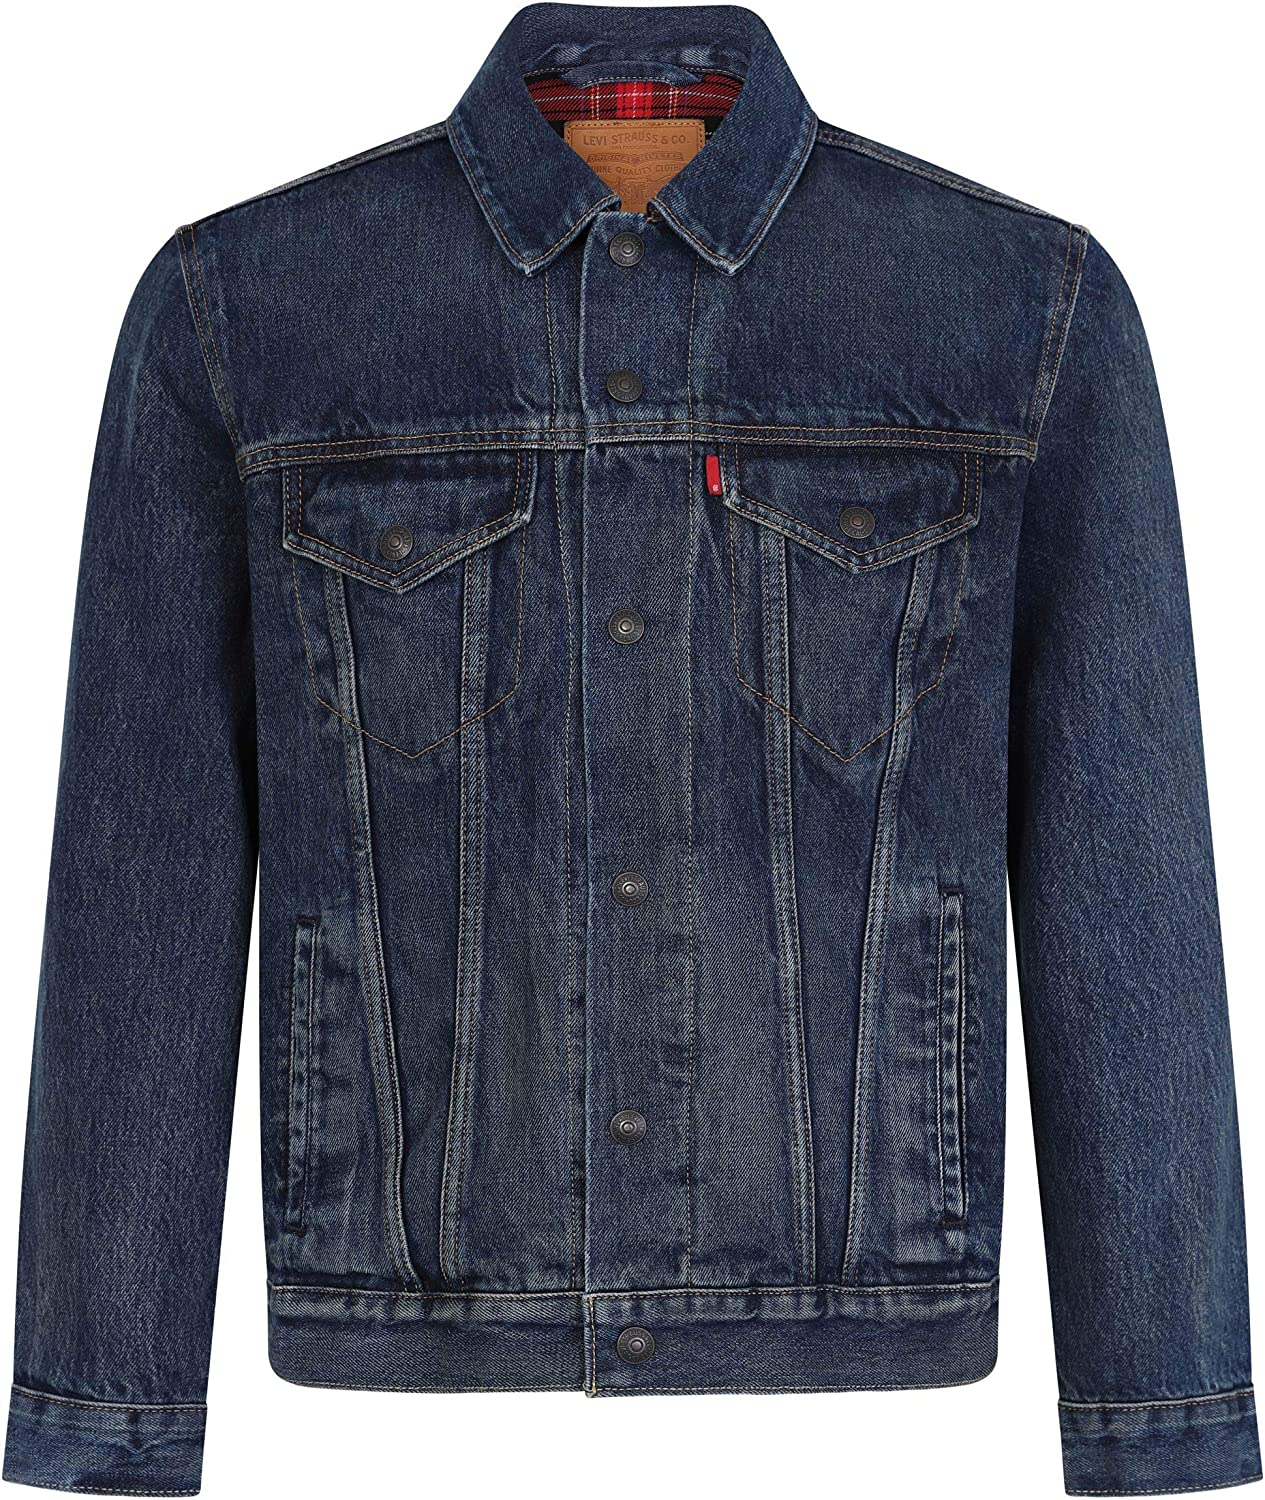 Levi's Men's Lined Trucker Jacket, Blue Levis